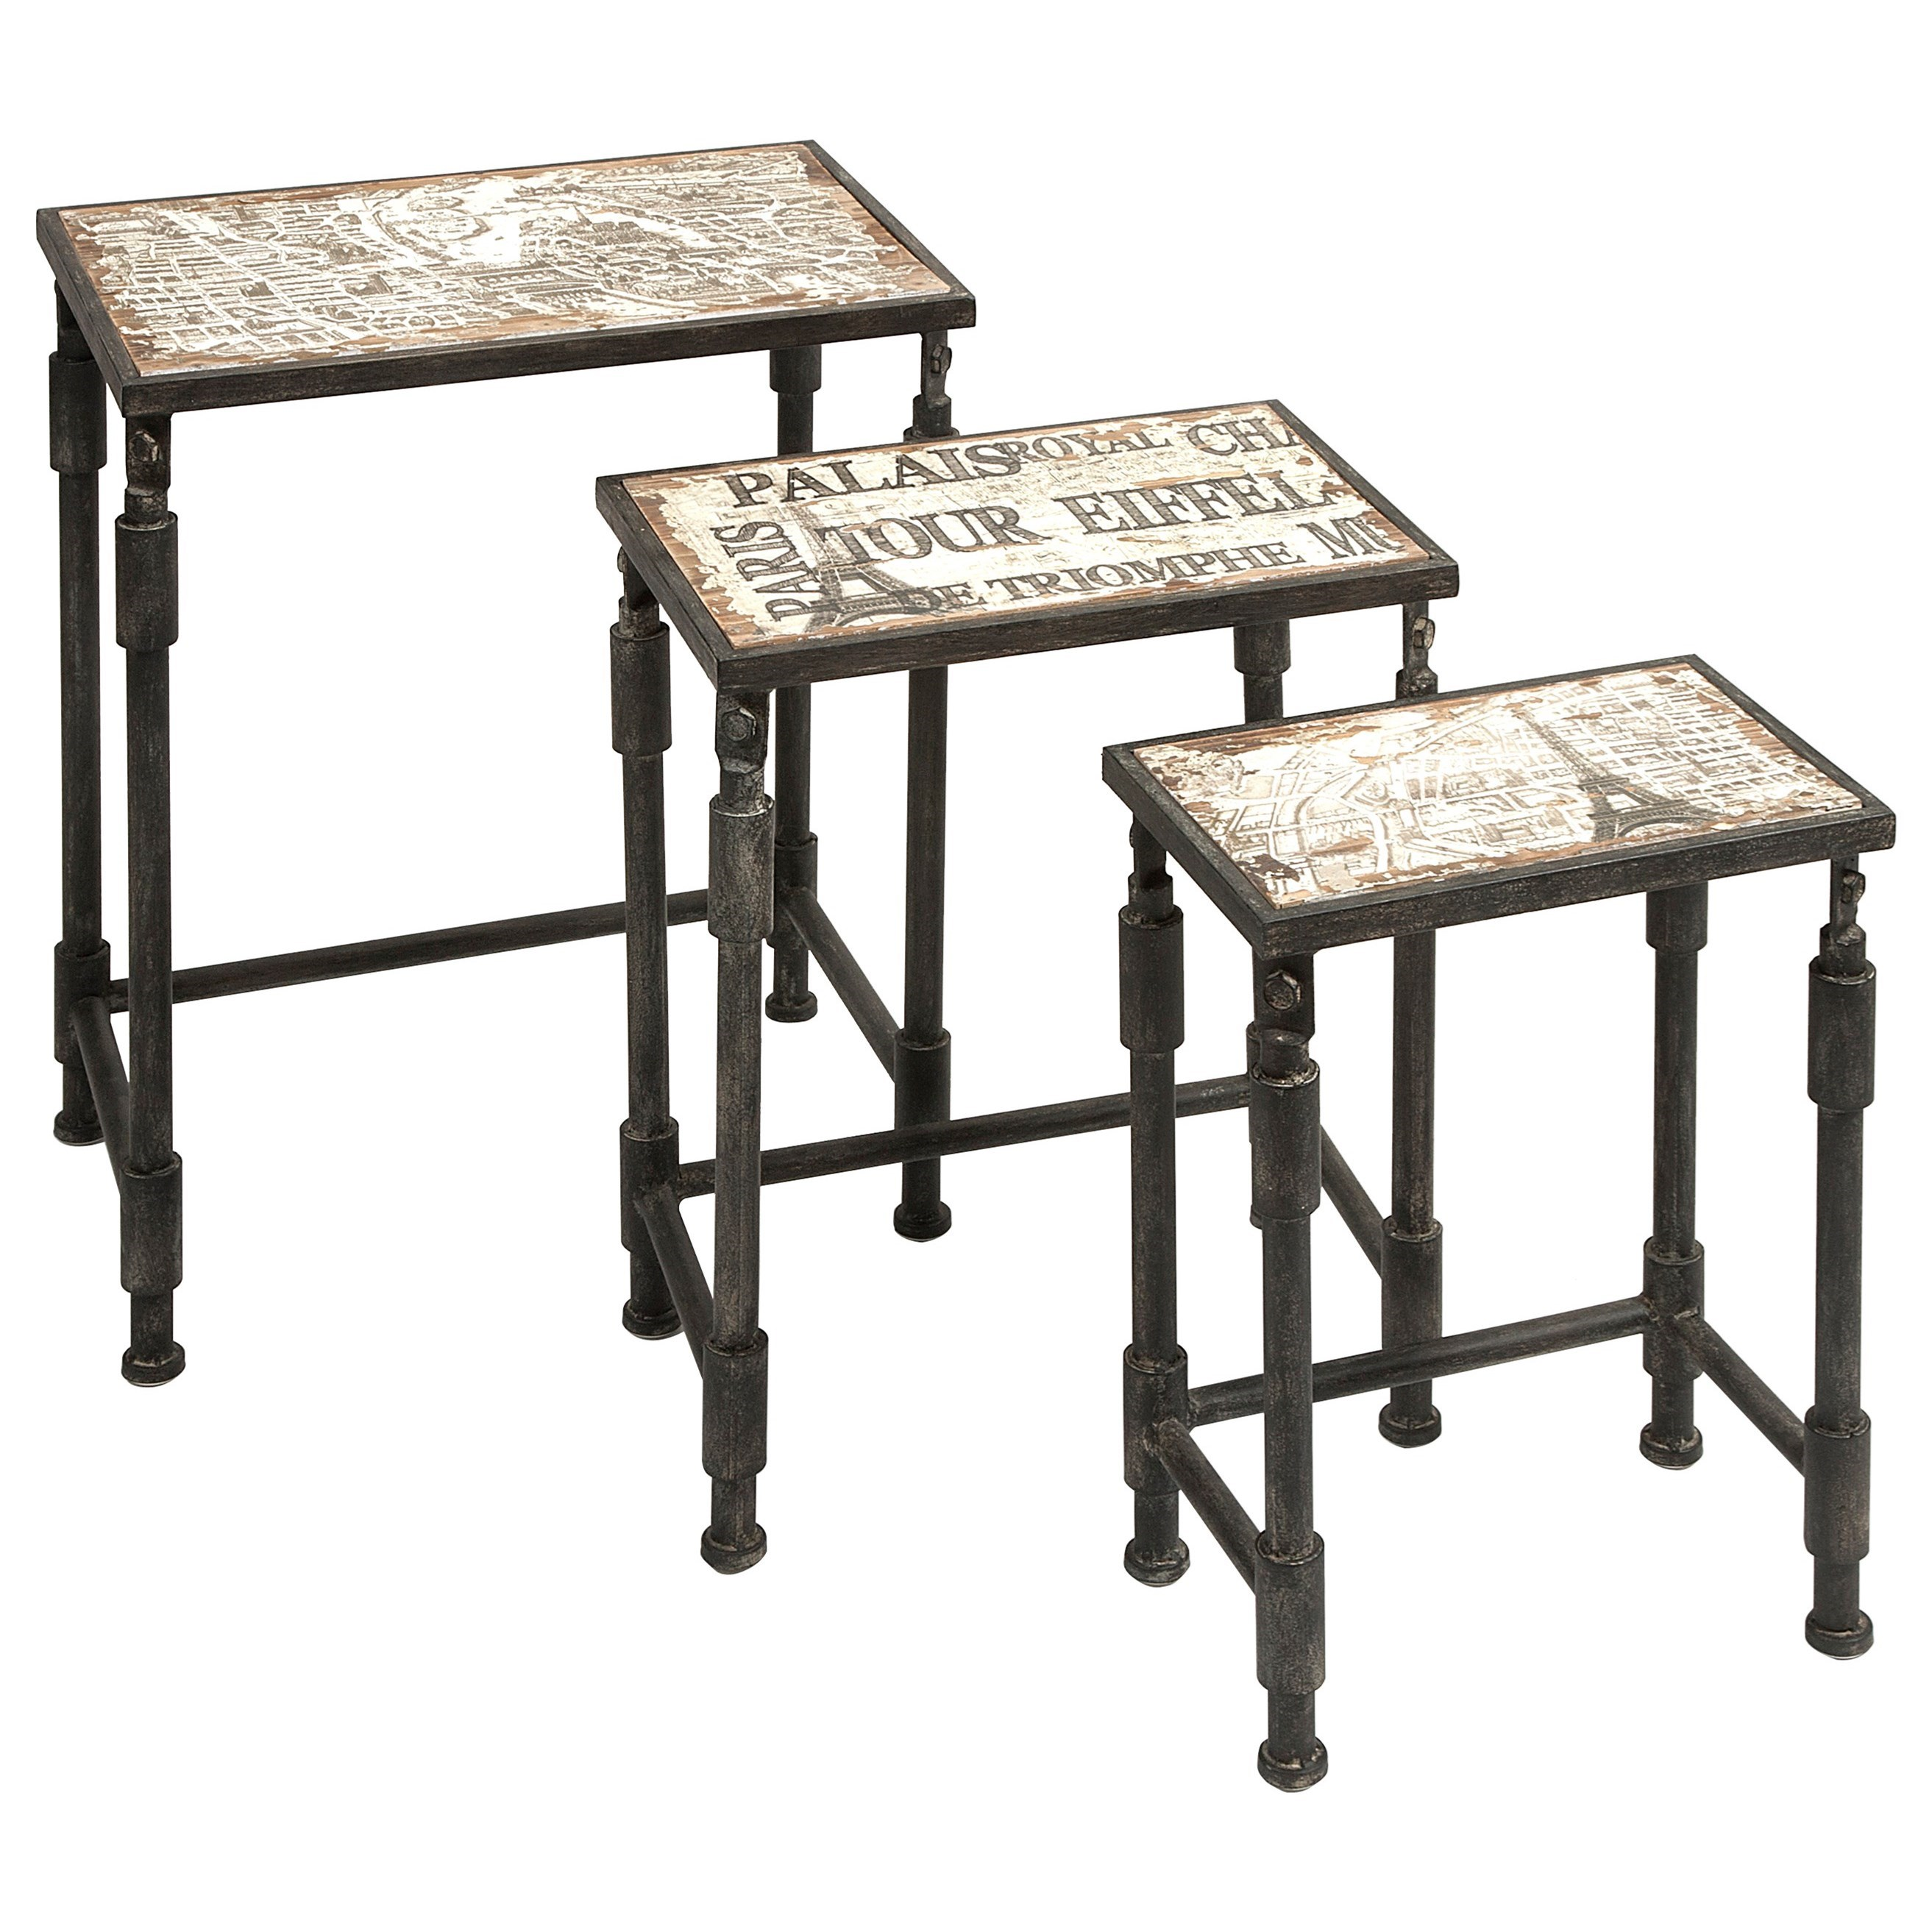 Knoxlin Nesting Tables - Set of 3